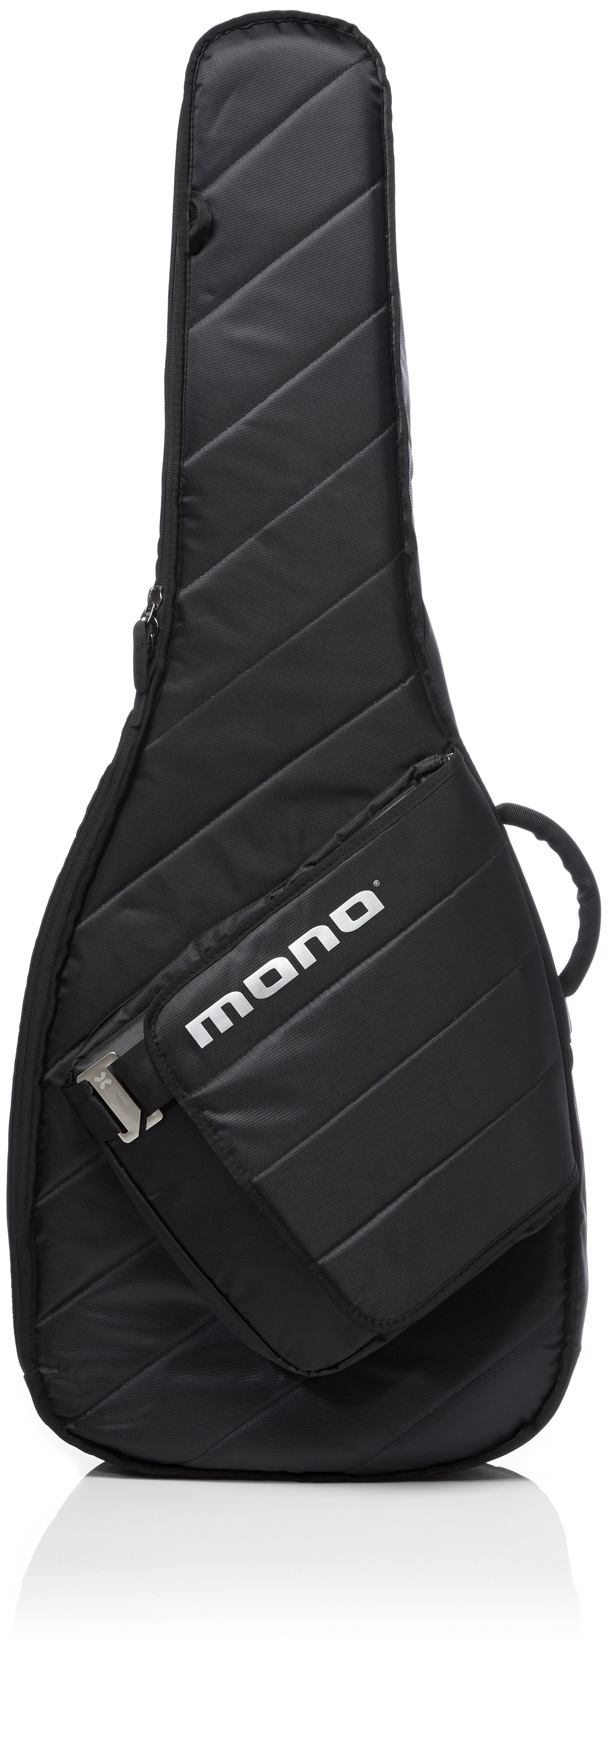 Mono Acoustic Sleeve Black